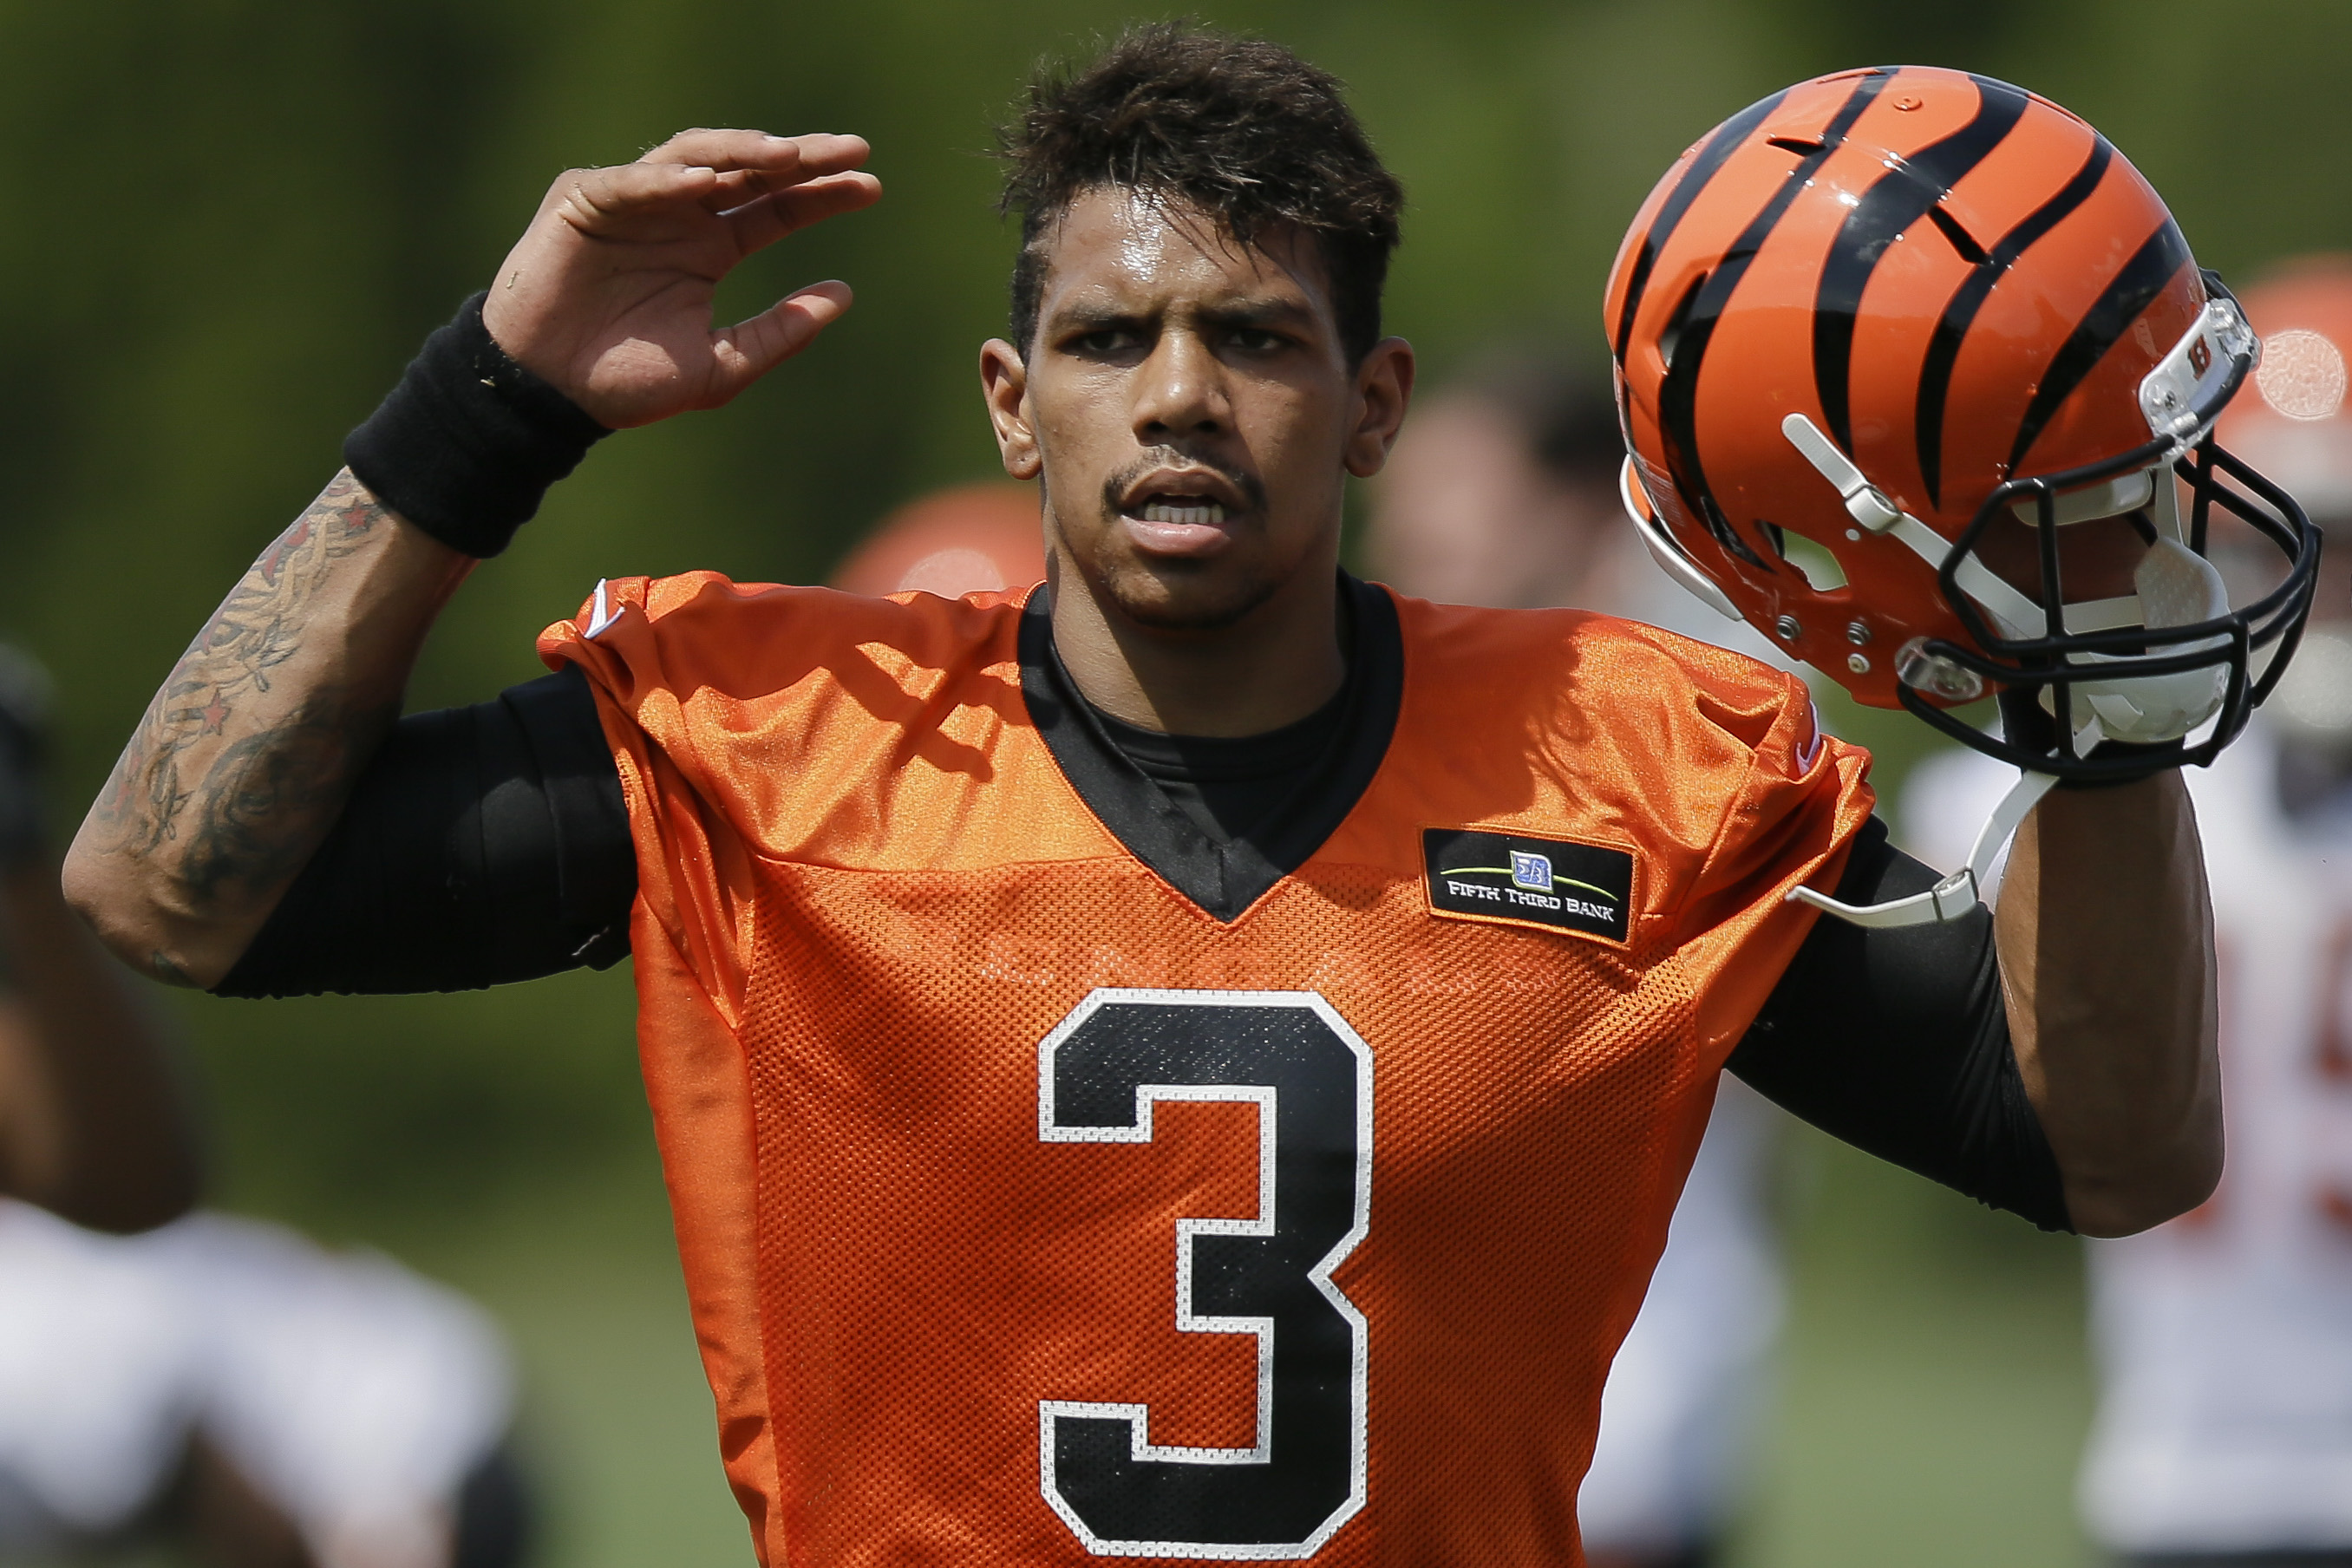 Cincinnati Bengals NFL football quarterback Terrelle Pryor participates in a drill during NFL football rookie minicamp in Cincinnati, Friday, May 8, 2015. (AP Photo/John Minchillo)